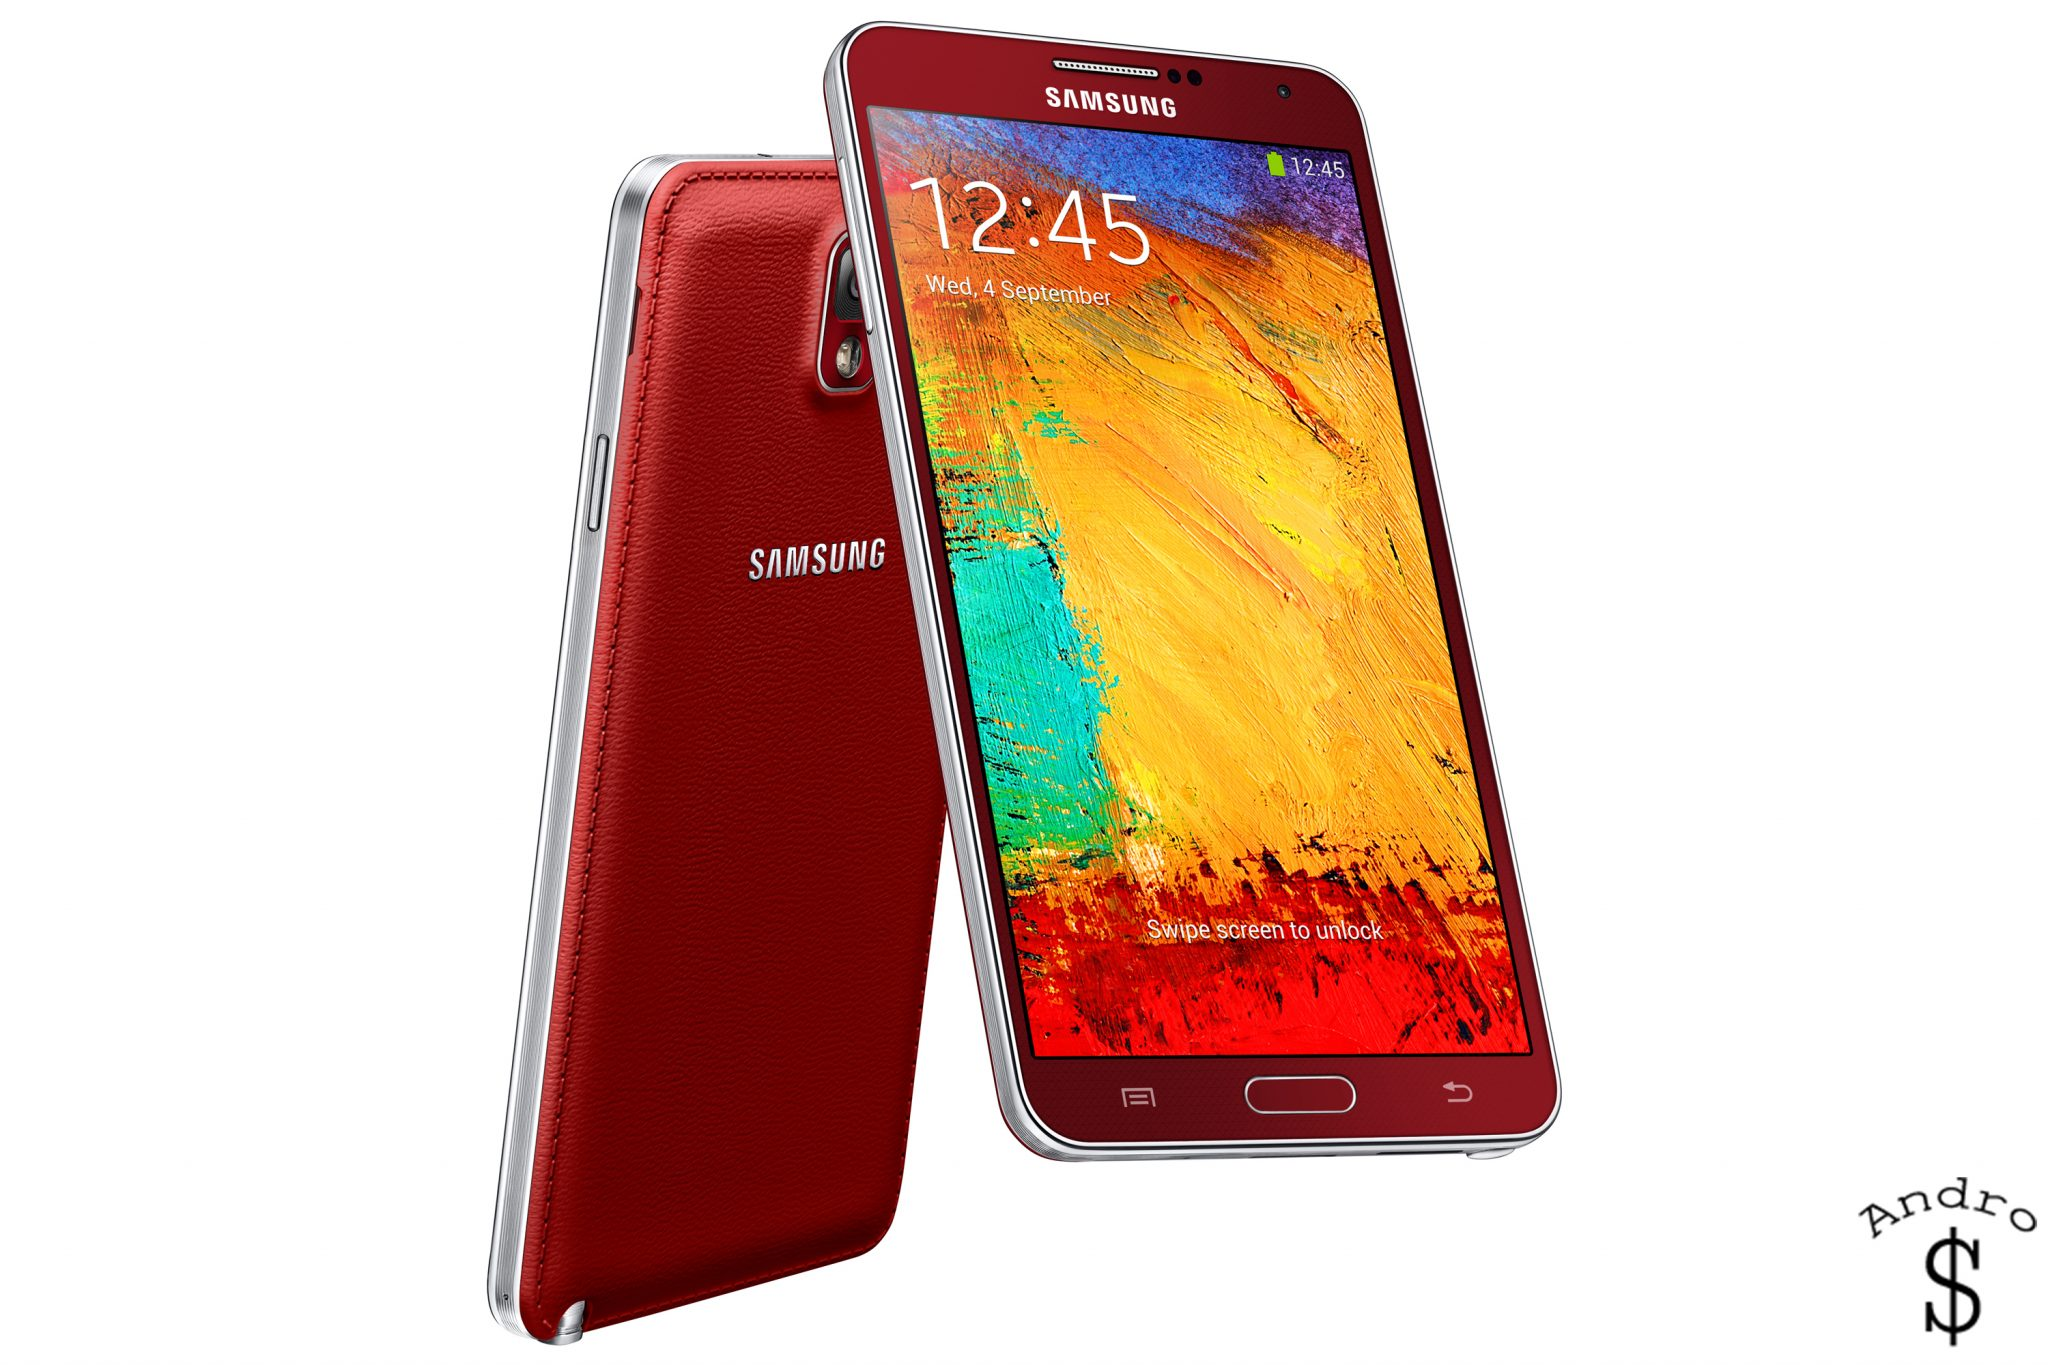 Note 3 3 - UPDATED : Samsung Galaxy Note 3 to come in more color options in January